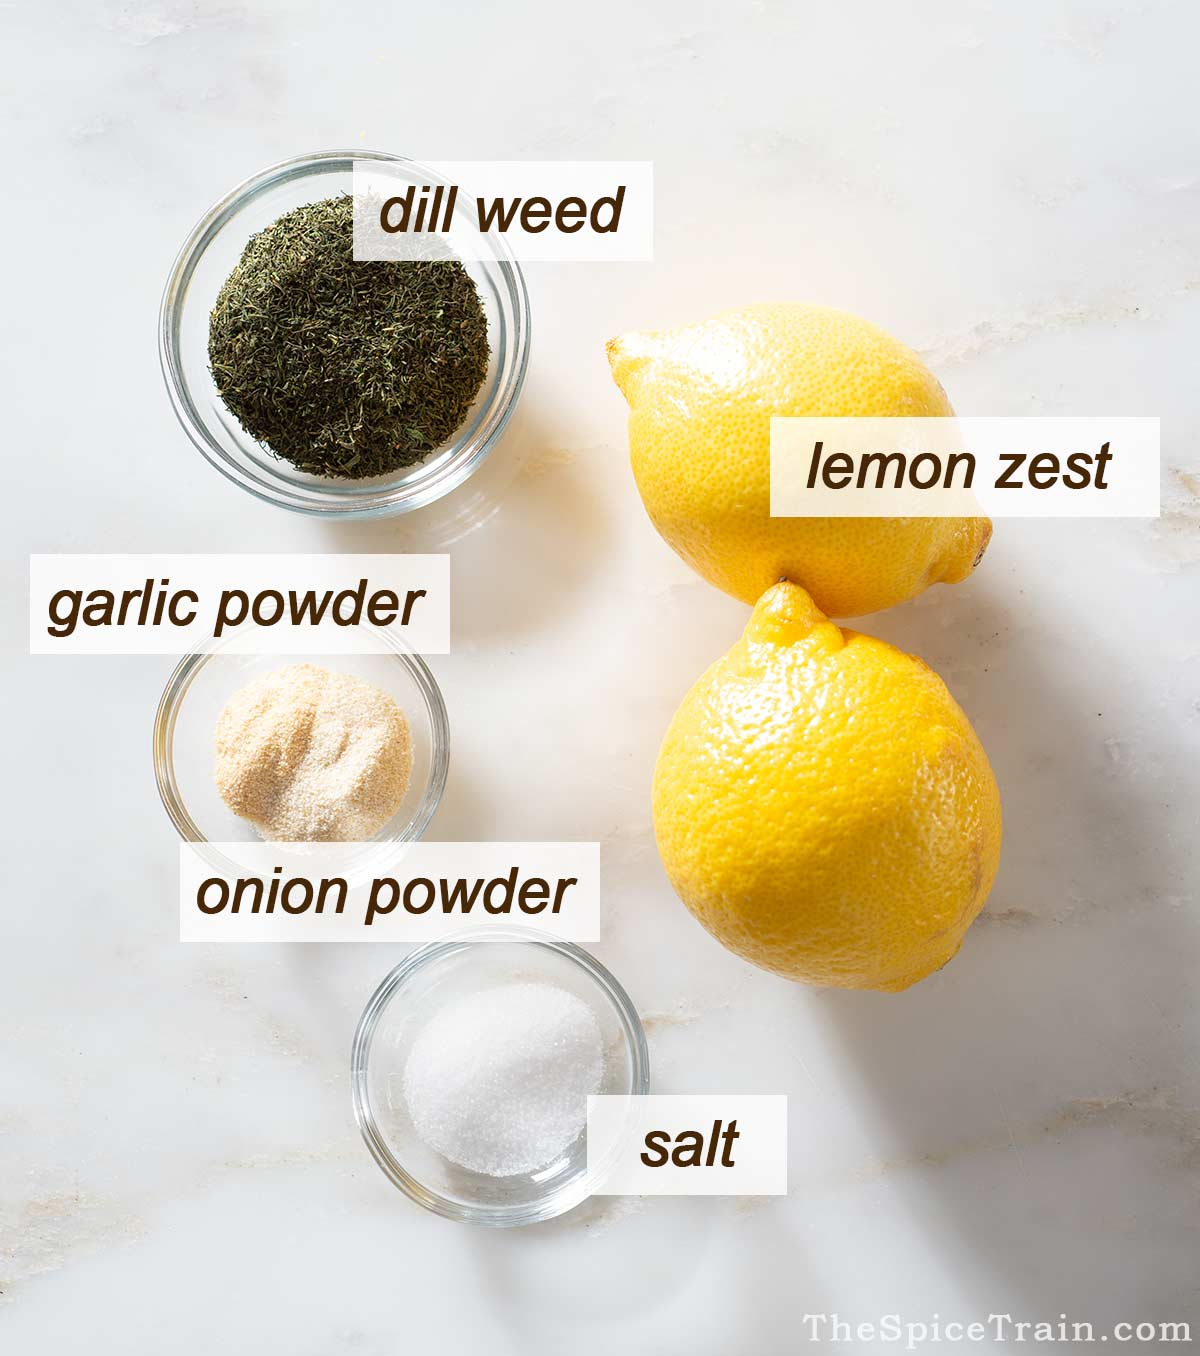 Lemons, dill, salt and garlic and onion powder on a kitchen counter.